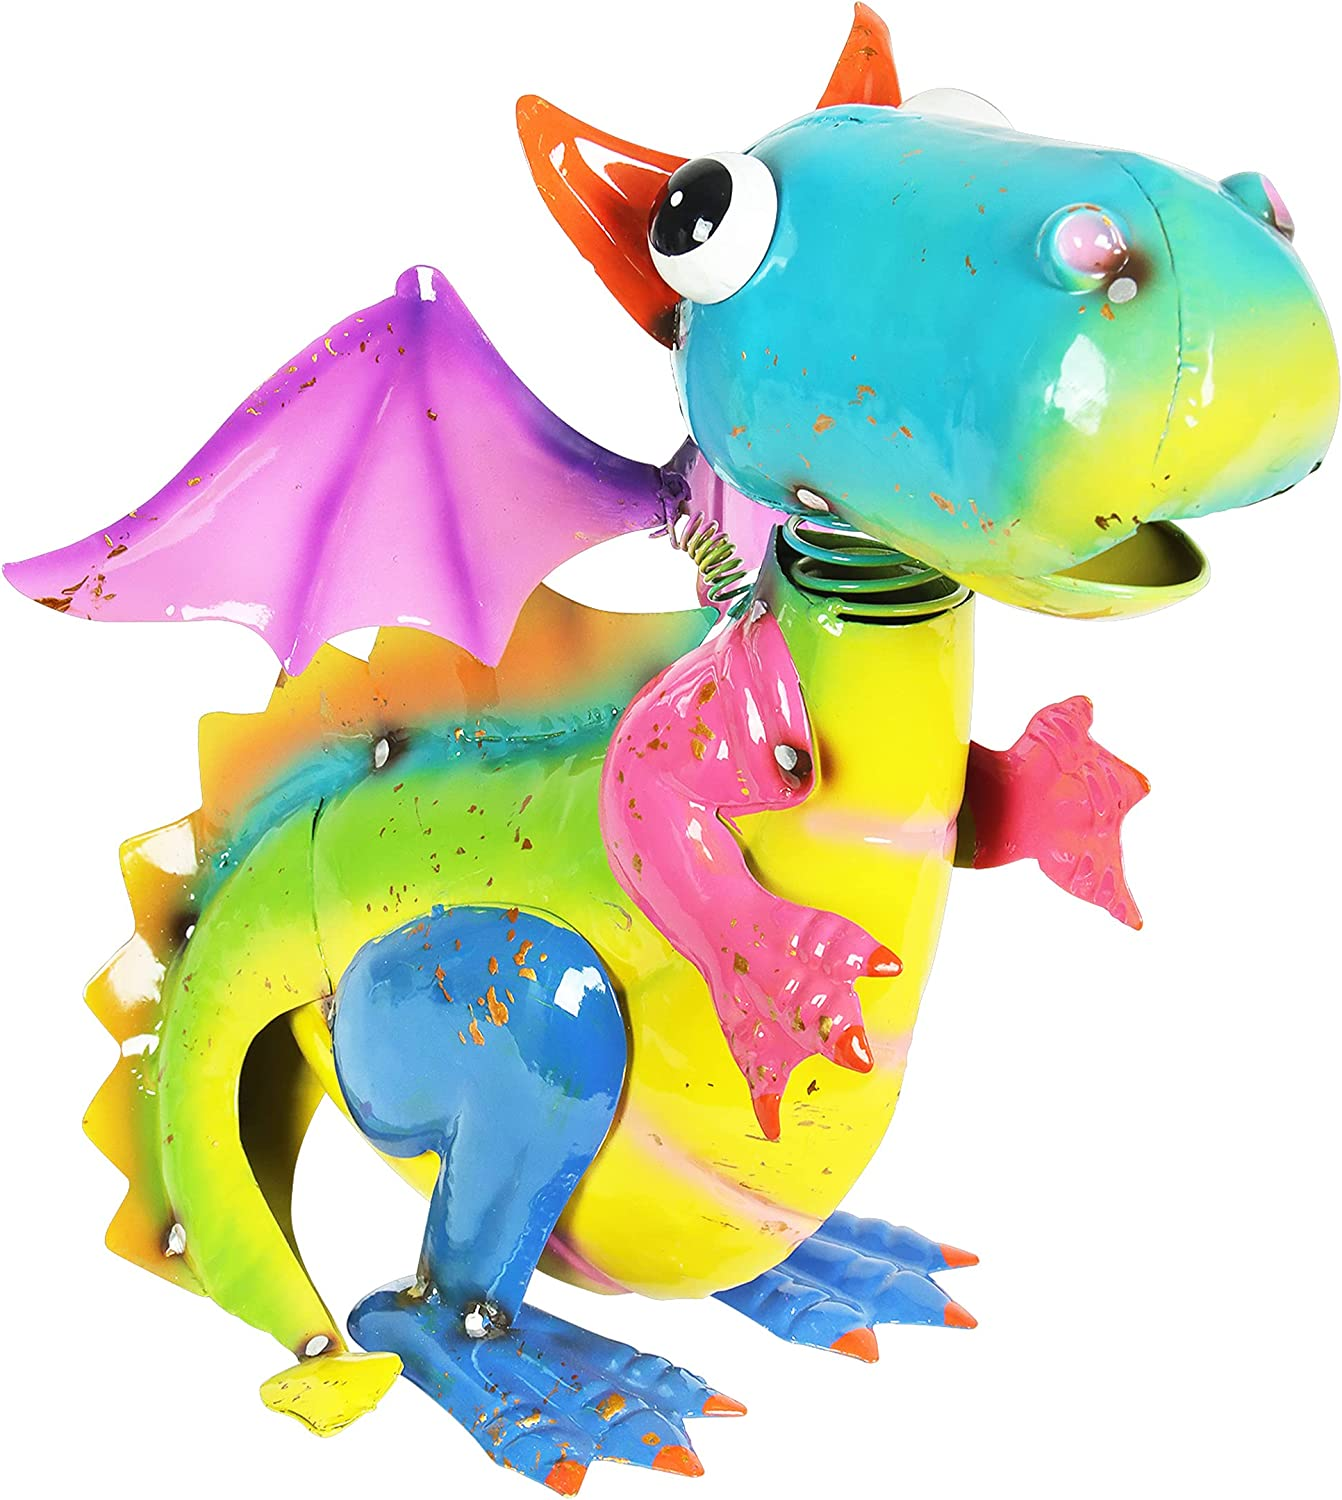 """Exhart Metal Flying Dragon Statue – Cute Dragon Sculpture w/Spring Bobblehead – Weather Resistant Metal Dragon Garden Decor - Hand-Painted Metal Dragon Statue for Garden Decor, 8"""" L x 9"""" W x 10"""" H"""